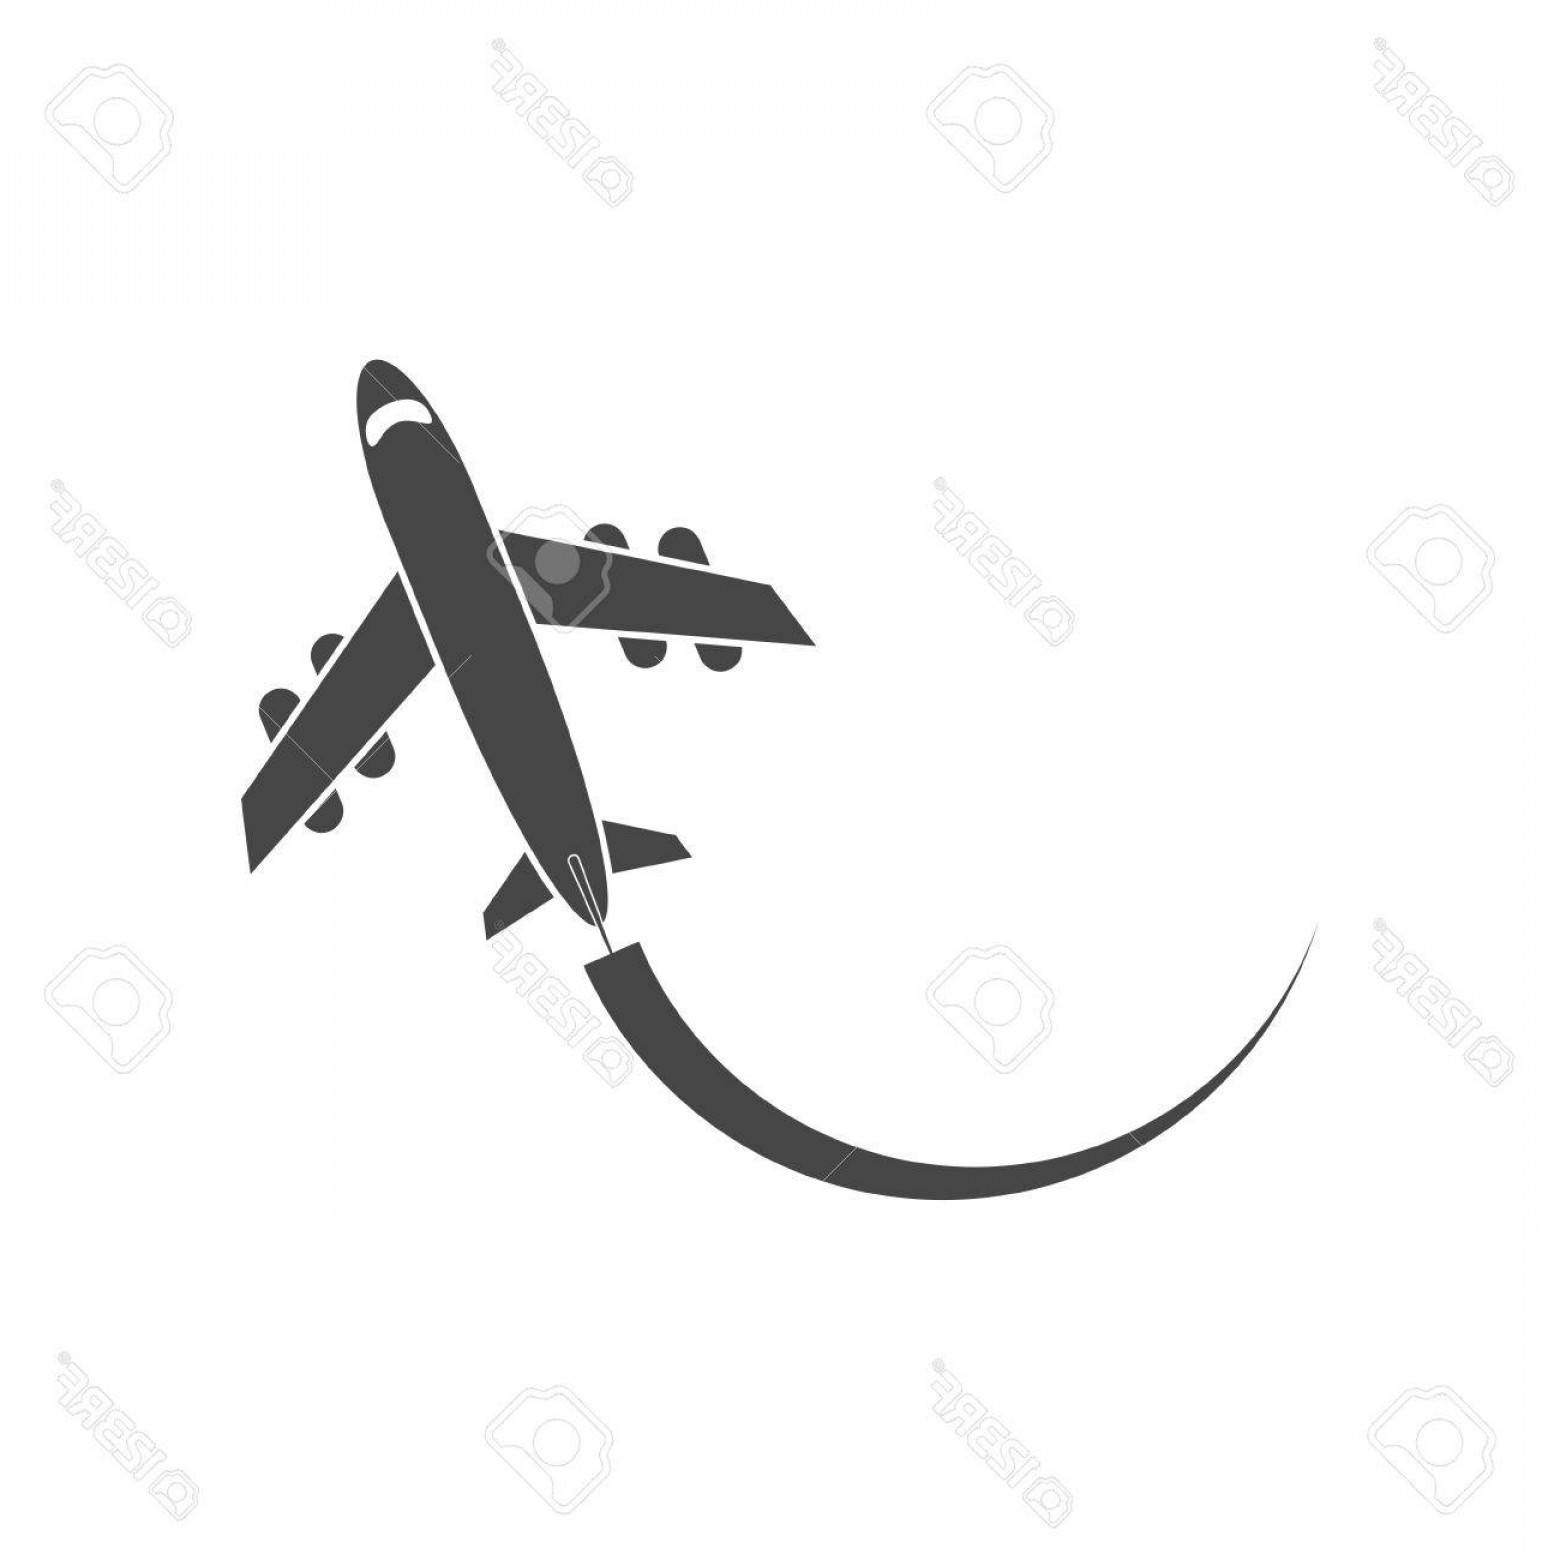 Airplane Travel Vectors: Photostock Vector Air Travel Vector Illustration Airplane Sign Icon